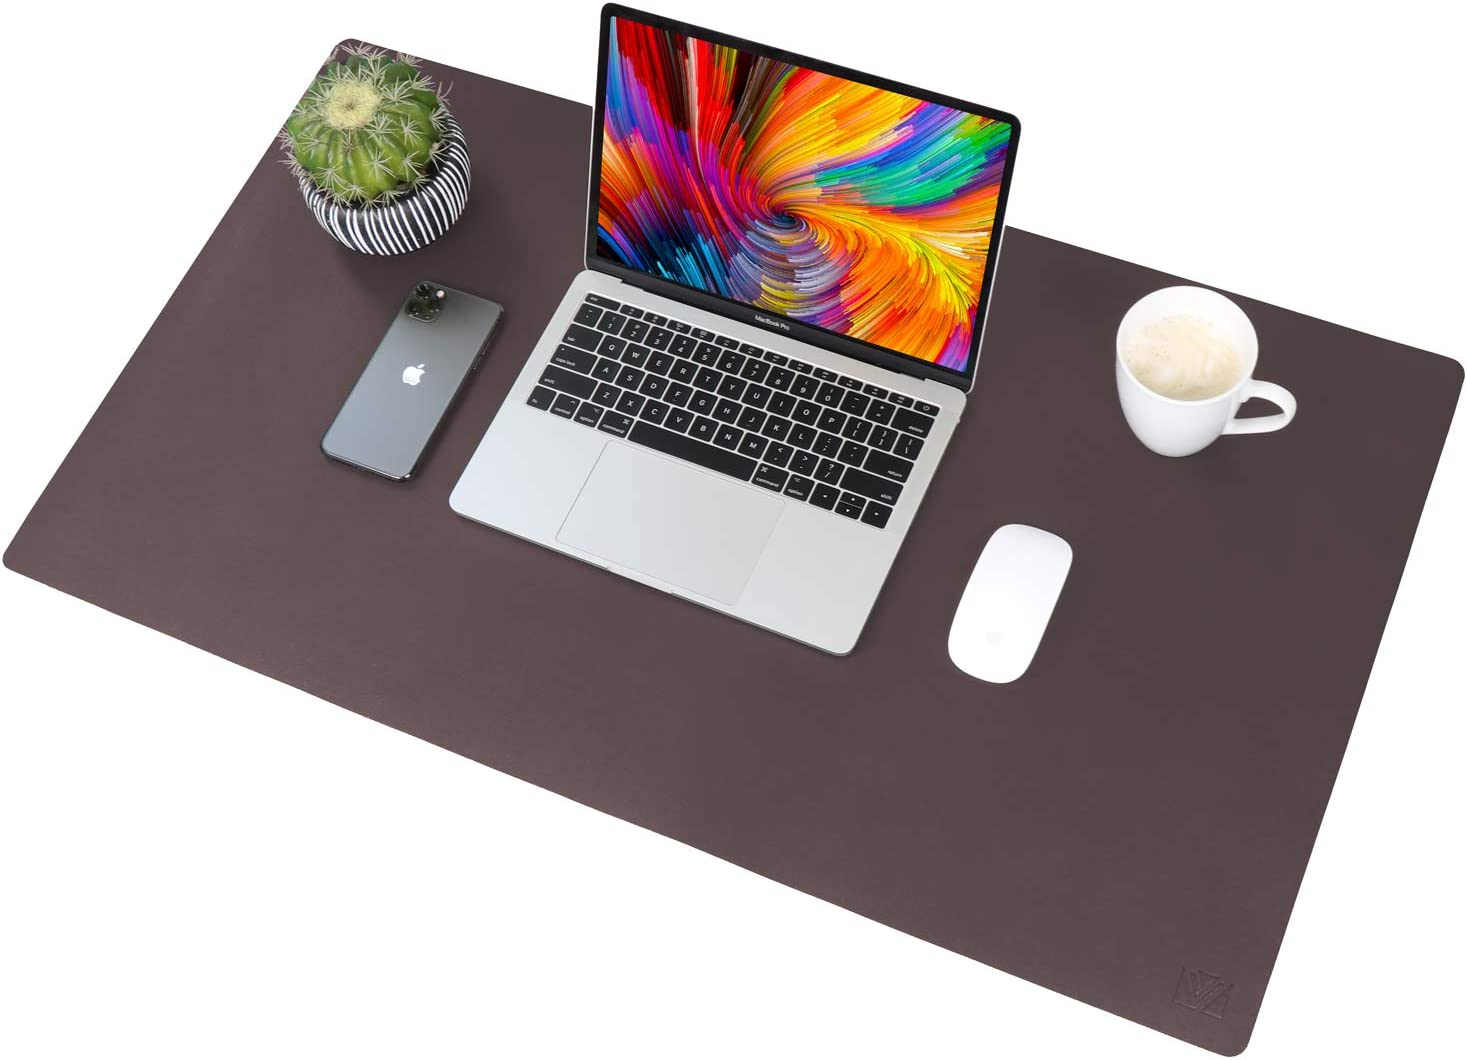 """Leather Desk Pad 31.5""""x 15.7"""", VineCreations Office Desk Mat Blotter Waterproof Brown - Premium Quality - Smooth Mouse Writing Surface - Maximum Protection for Desk Office/Home"""